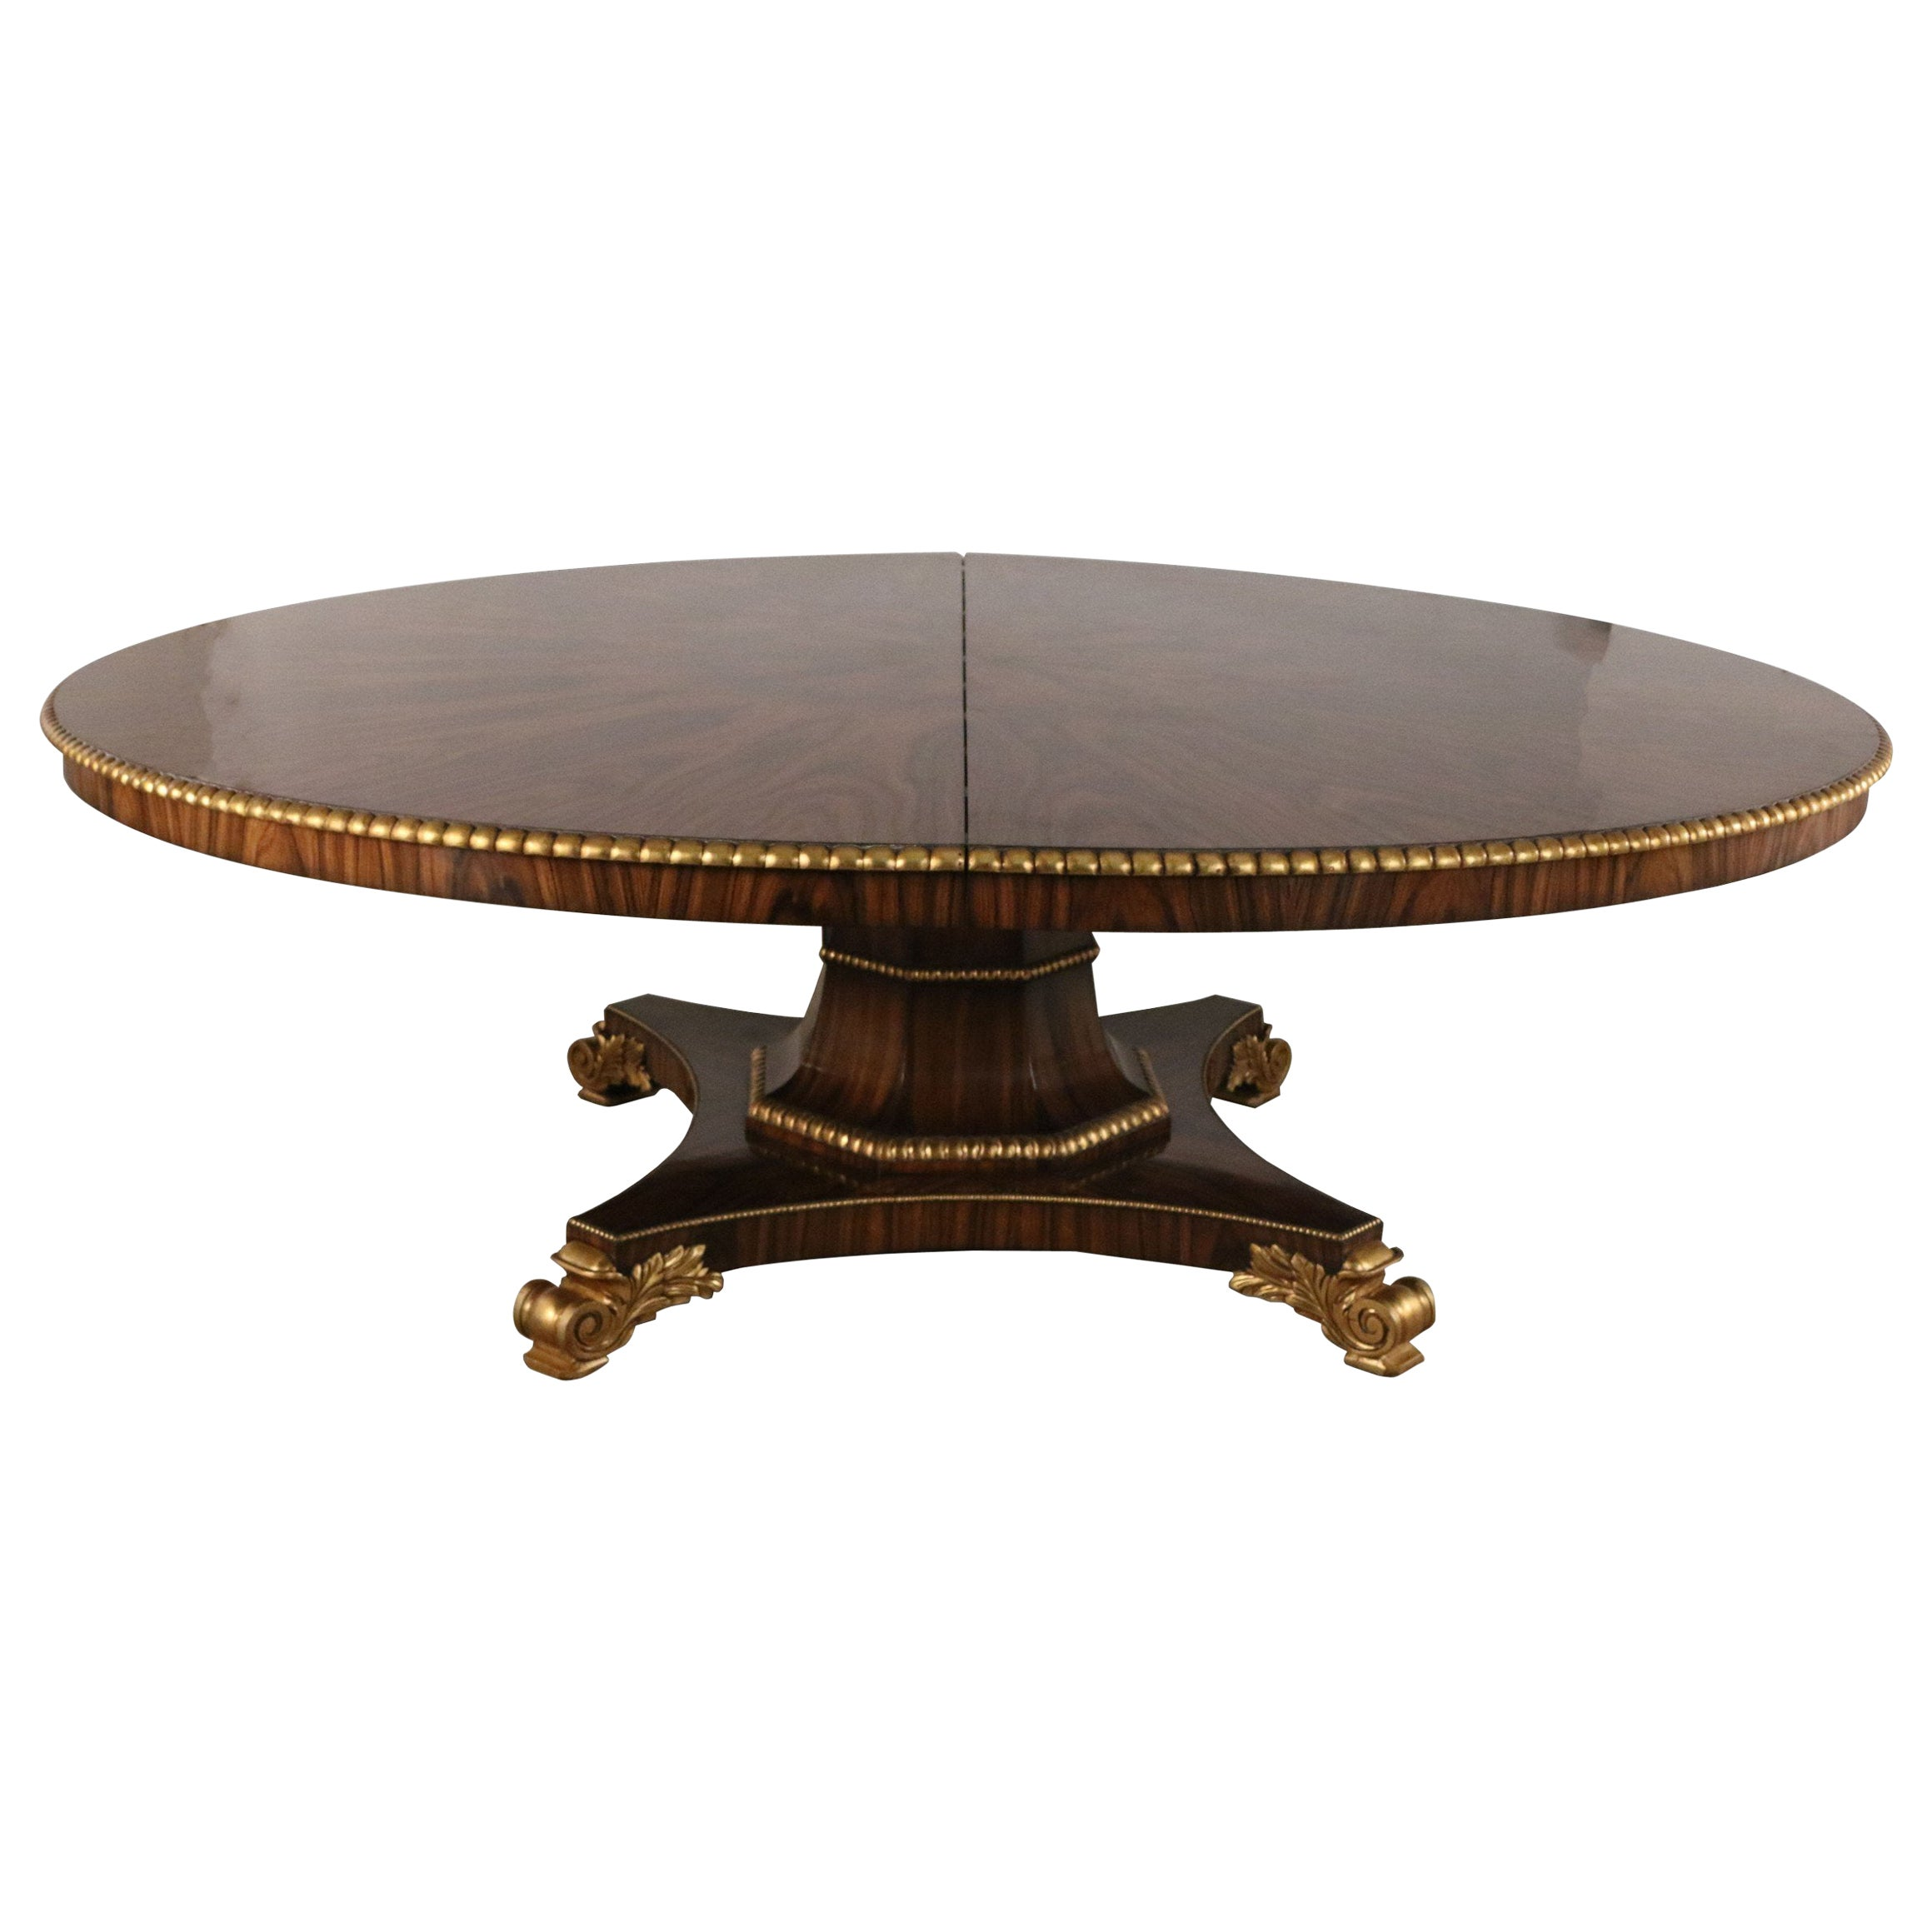 English Regency Style Mahogany and Giltwood Round Center Table